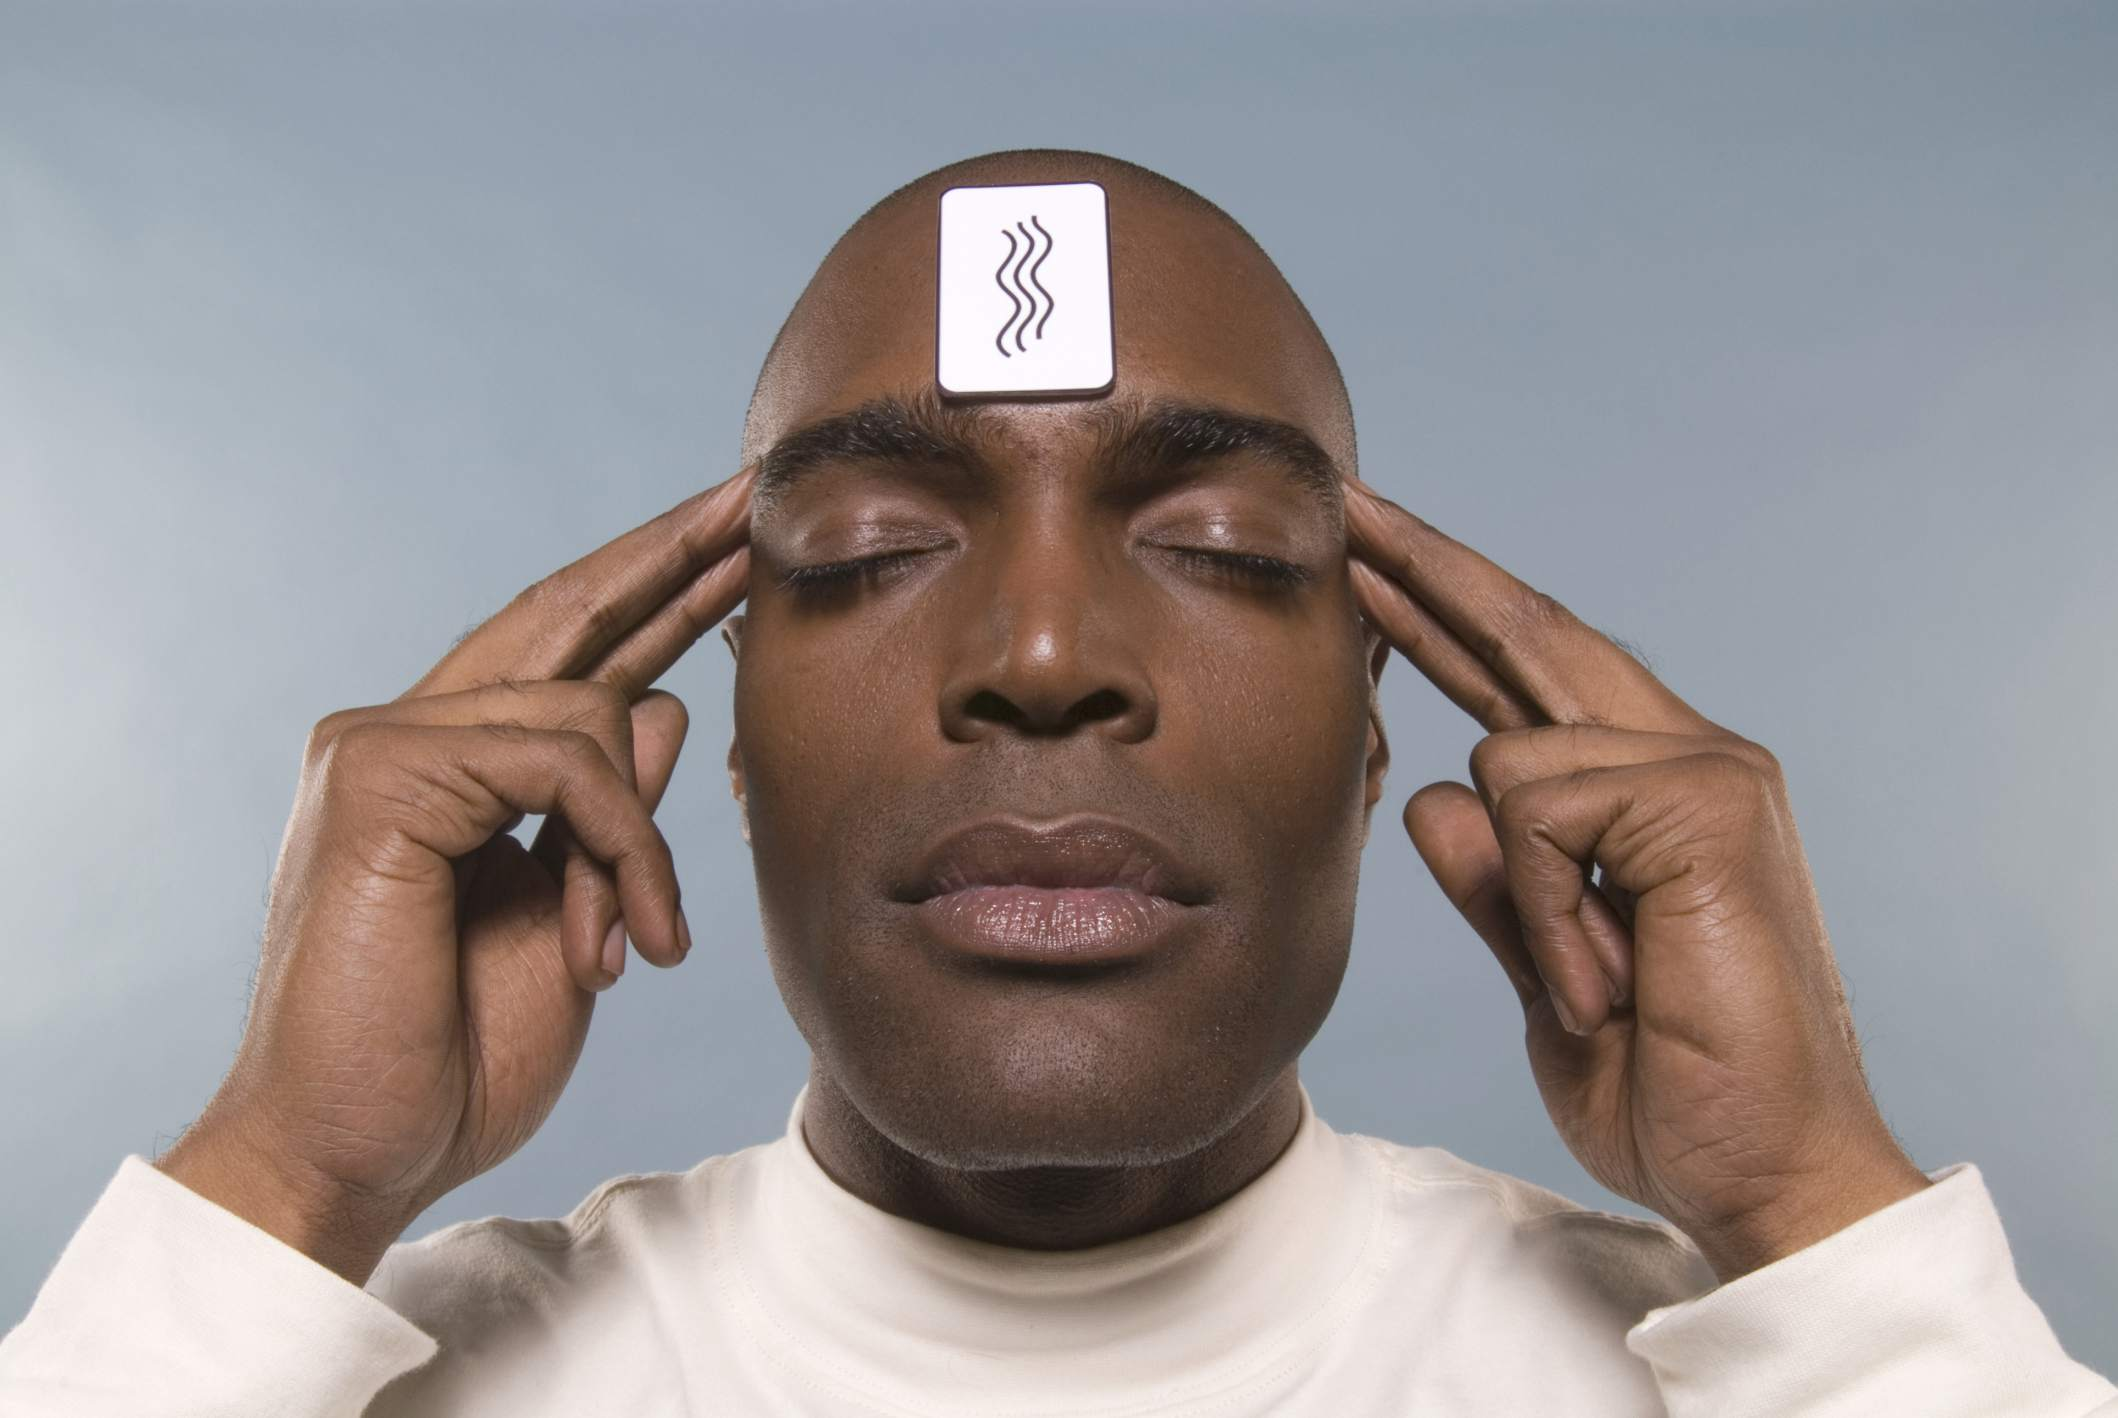 A man with an ESP card on his forehead